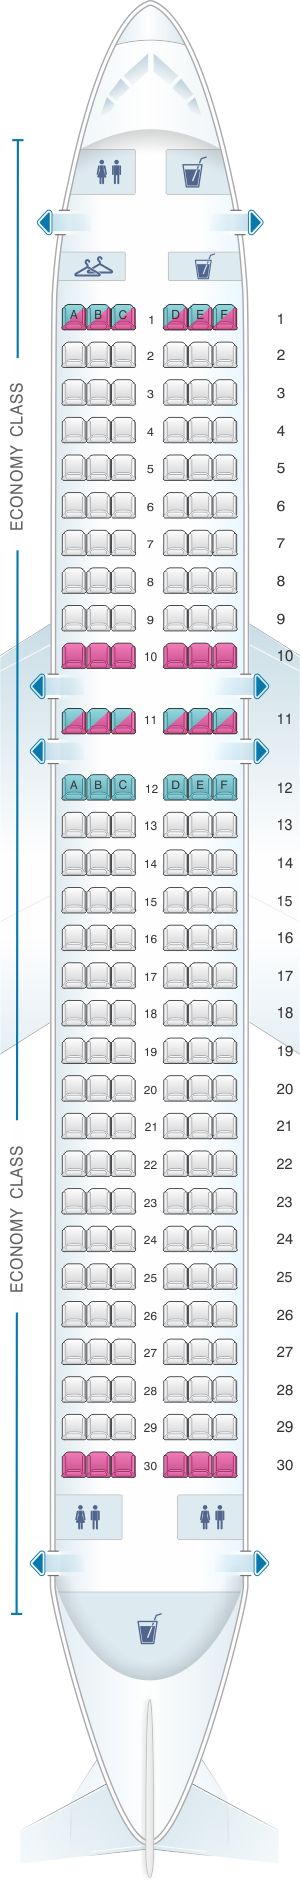 Seat map for Croatia Airlines Airbus A320